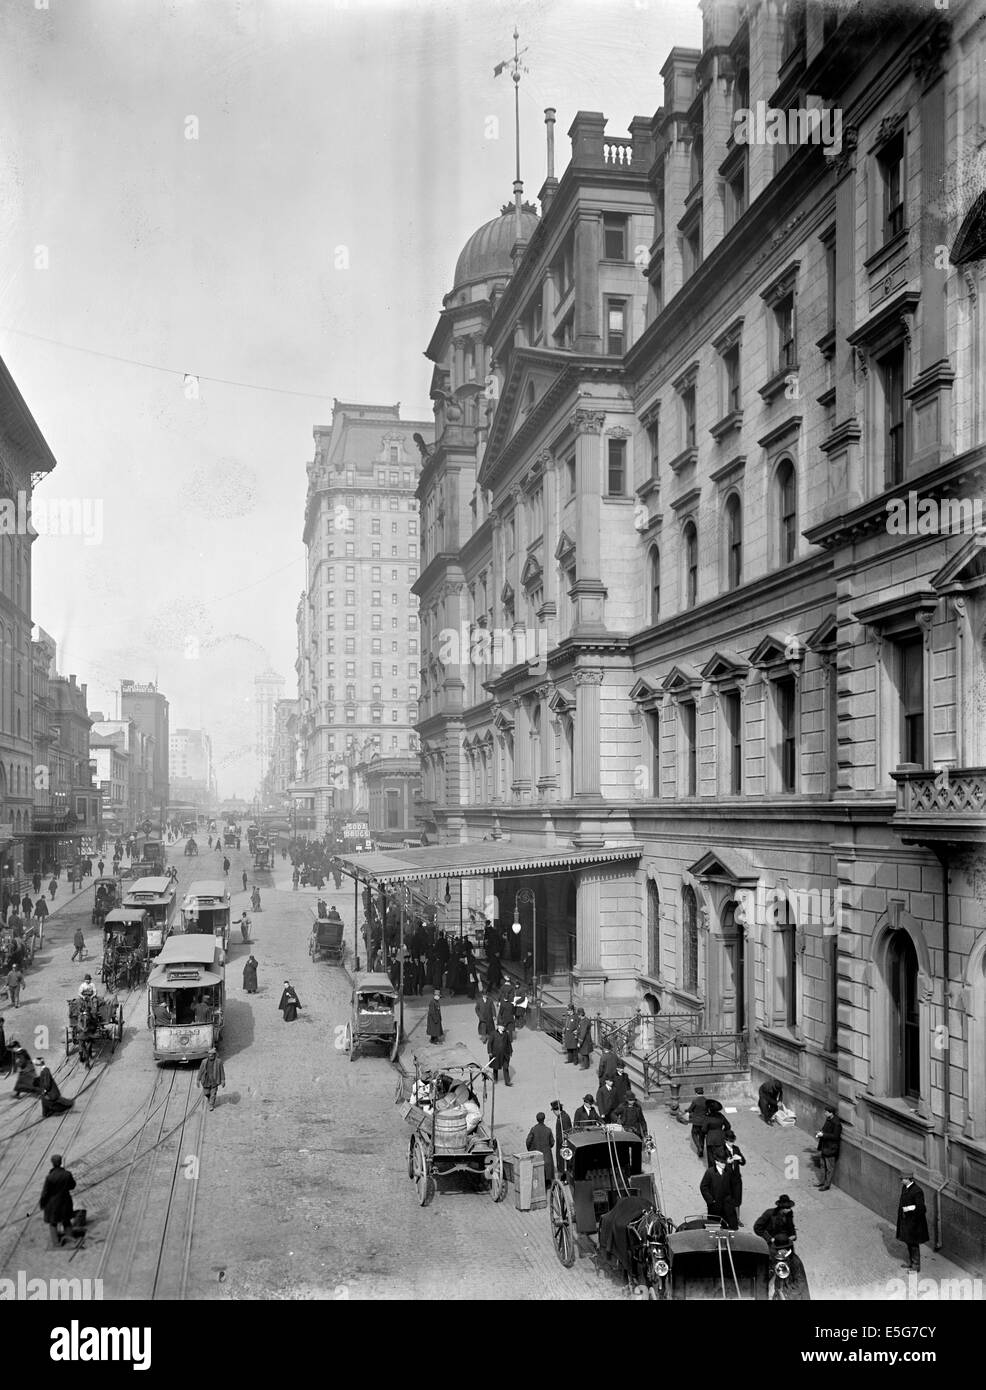 New York City, Snap Shatow, 42nd Street, showing entrance to Grand Central Station, circa 1905 - Stock Image